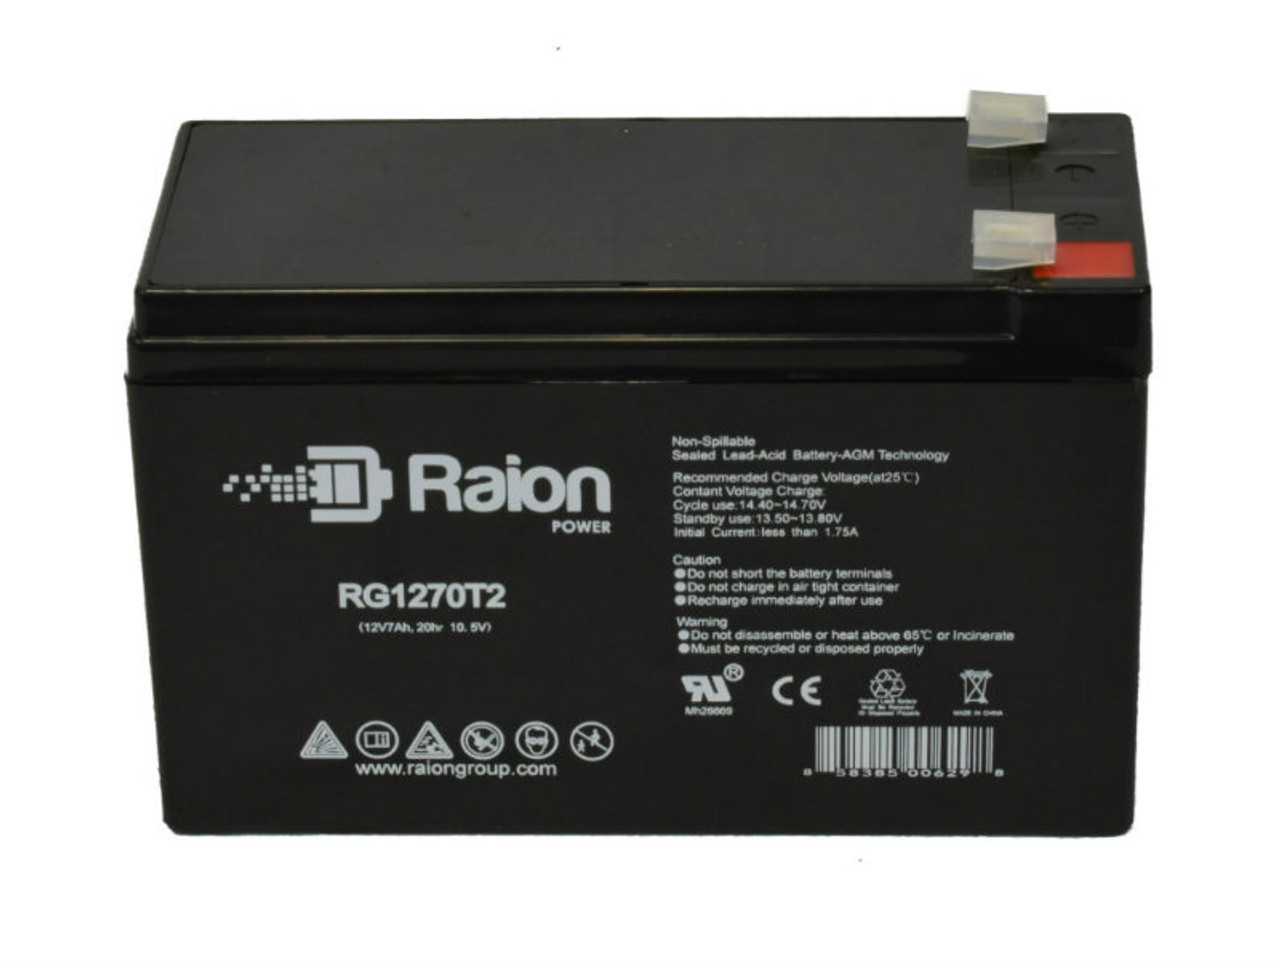 Raion Power 12V 7Ah SLA Battery With T1 Terminals For Newmox FNC-1272